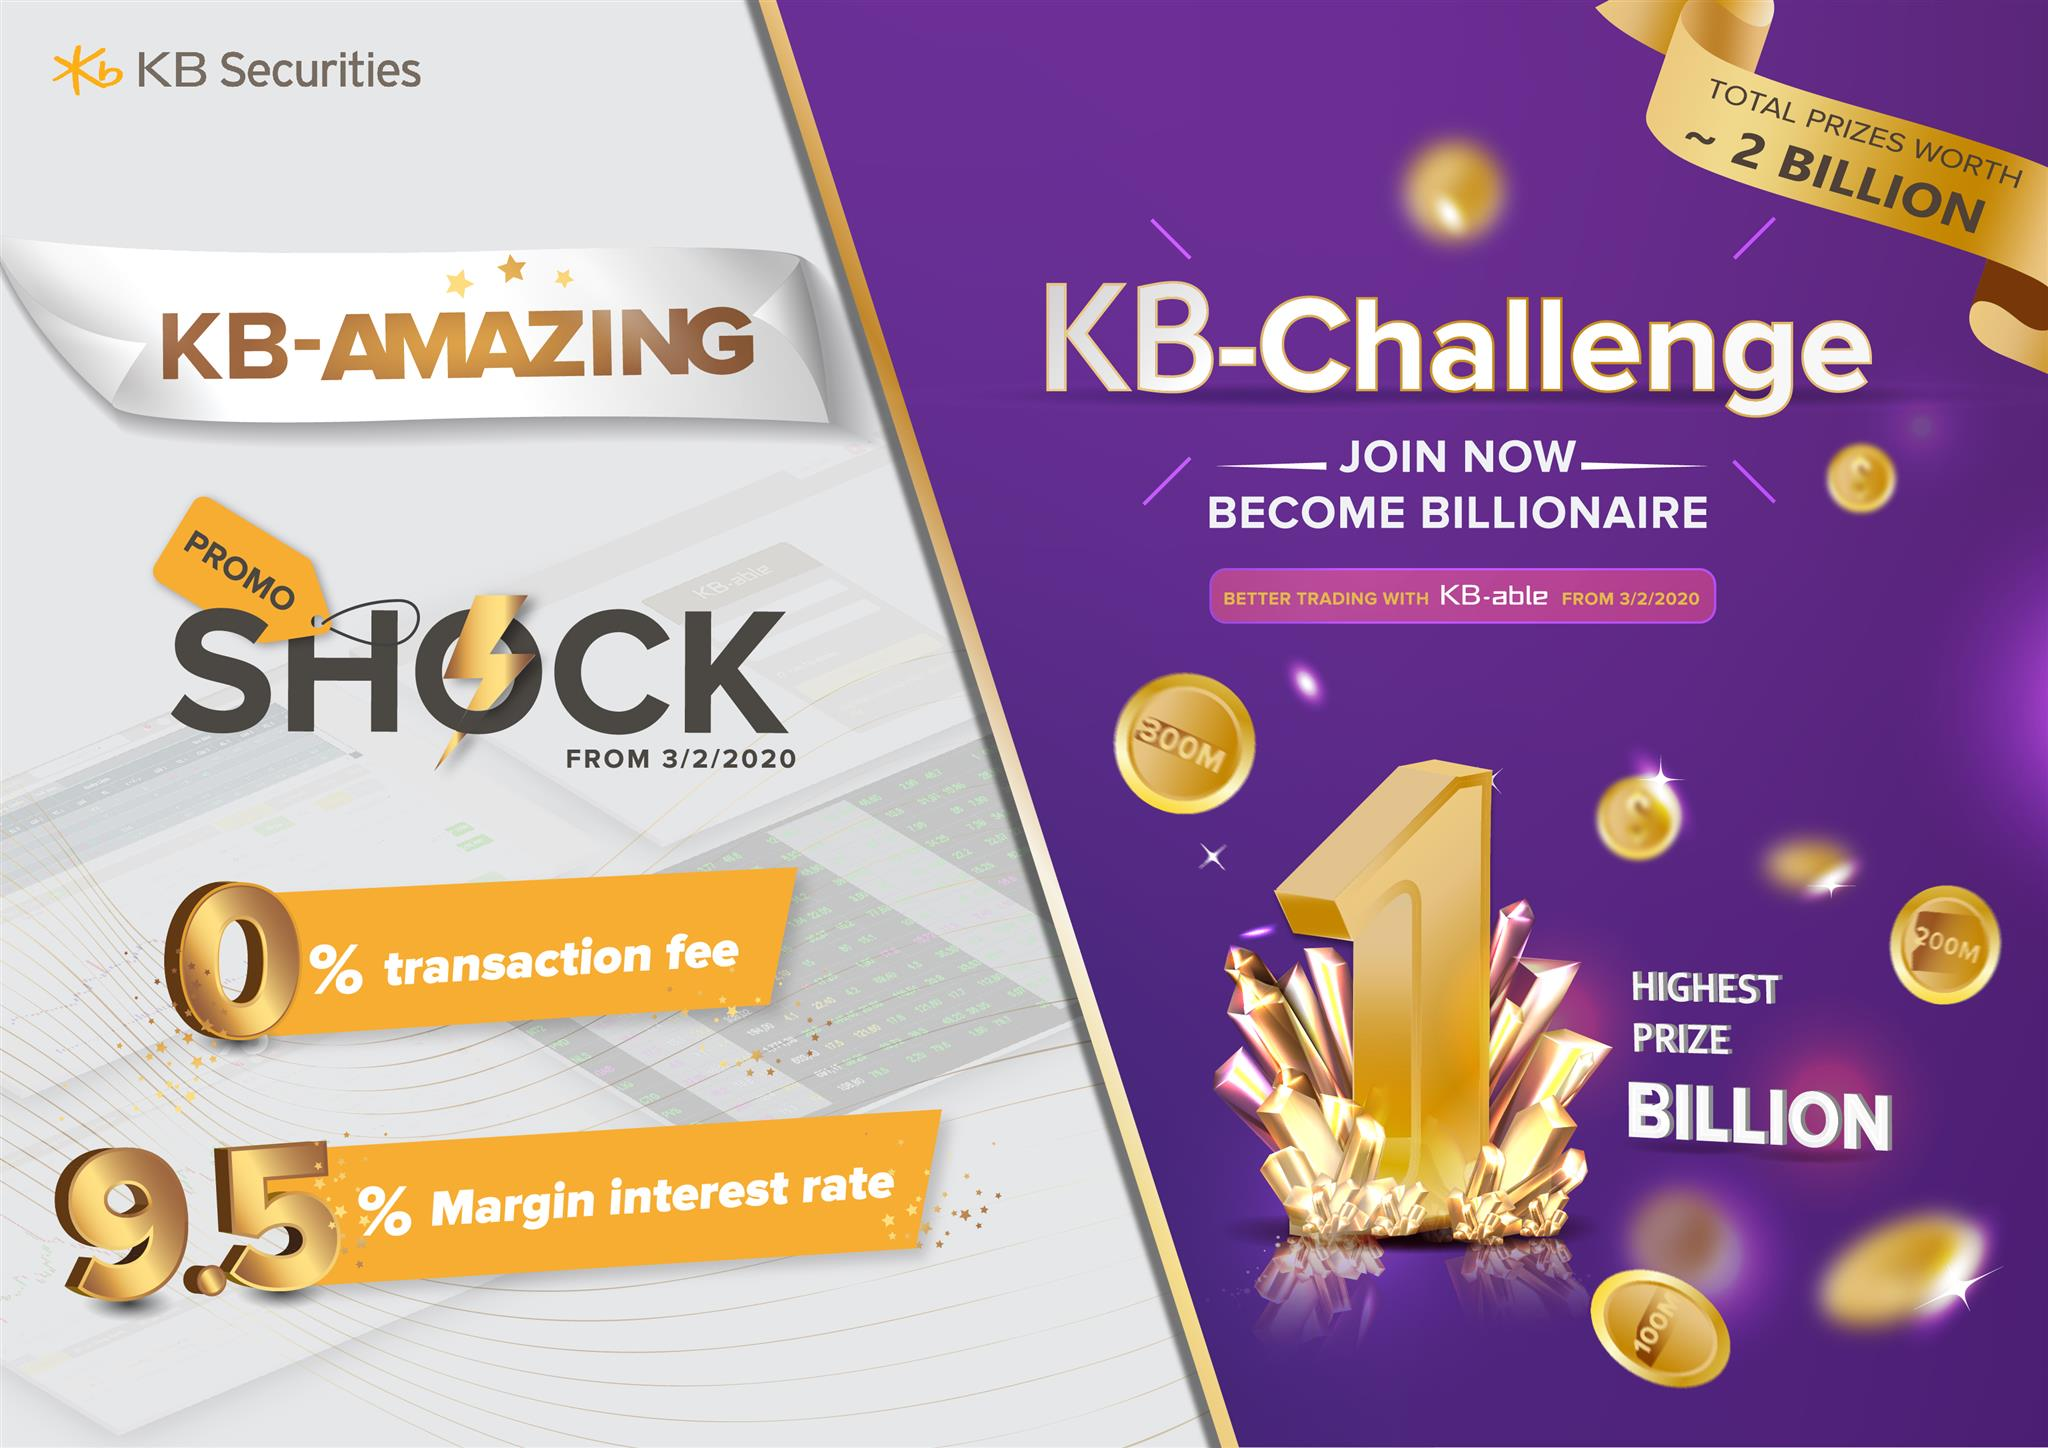 KBSV launched KB-Amazing promotion and KB-Challenge contest